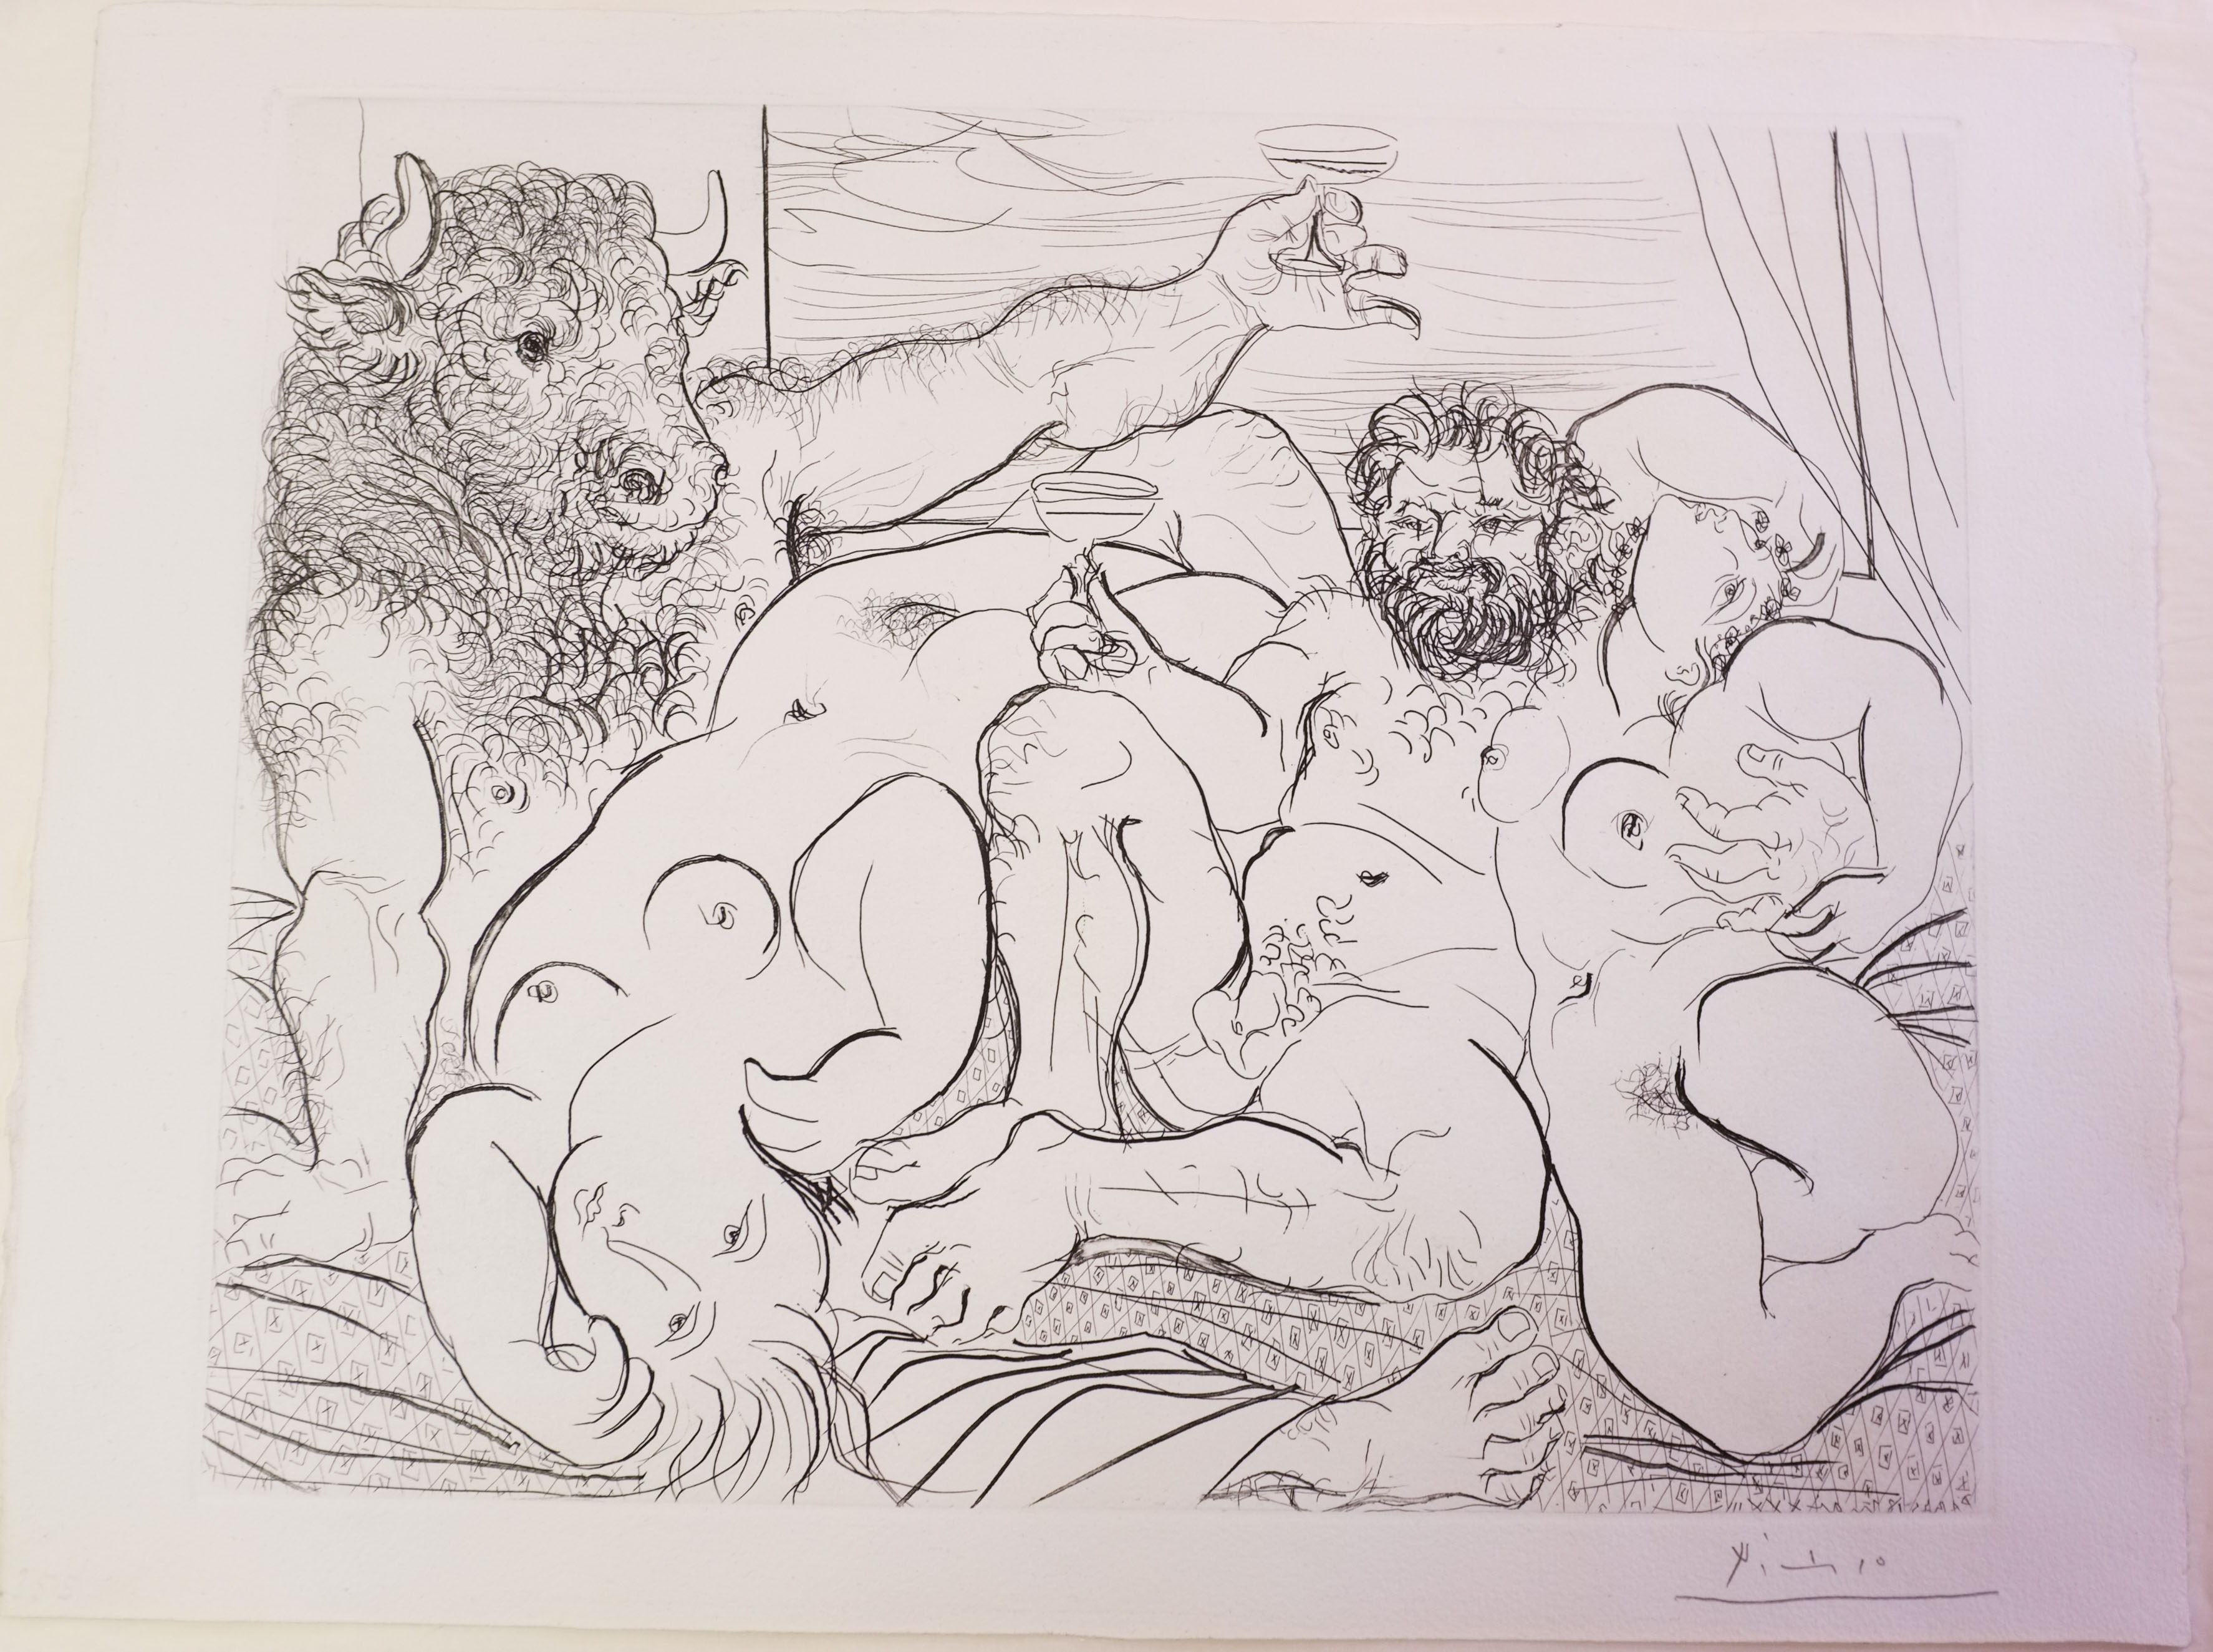 restoration and conservation of picasso etching on paper at London studio